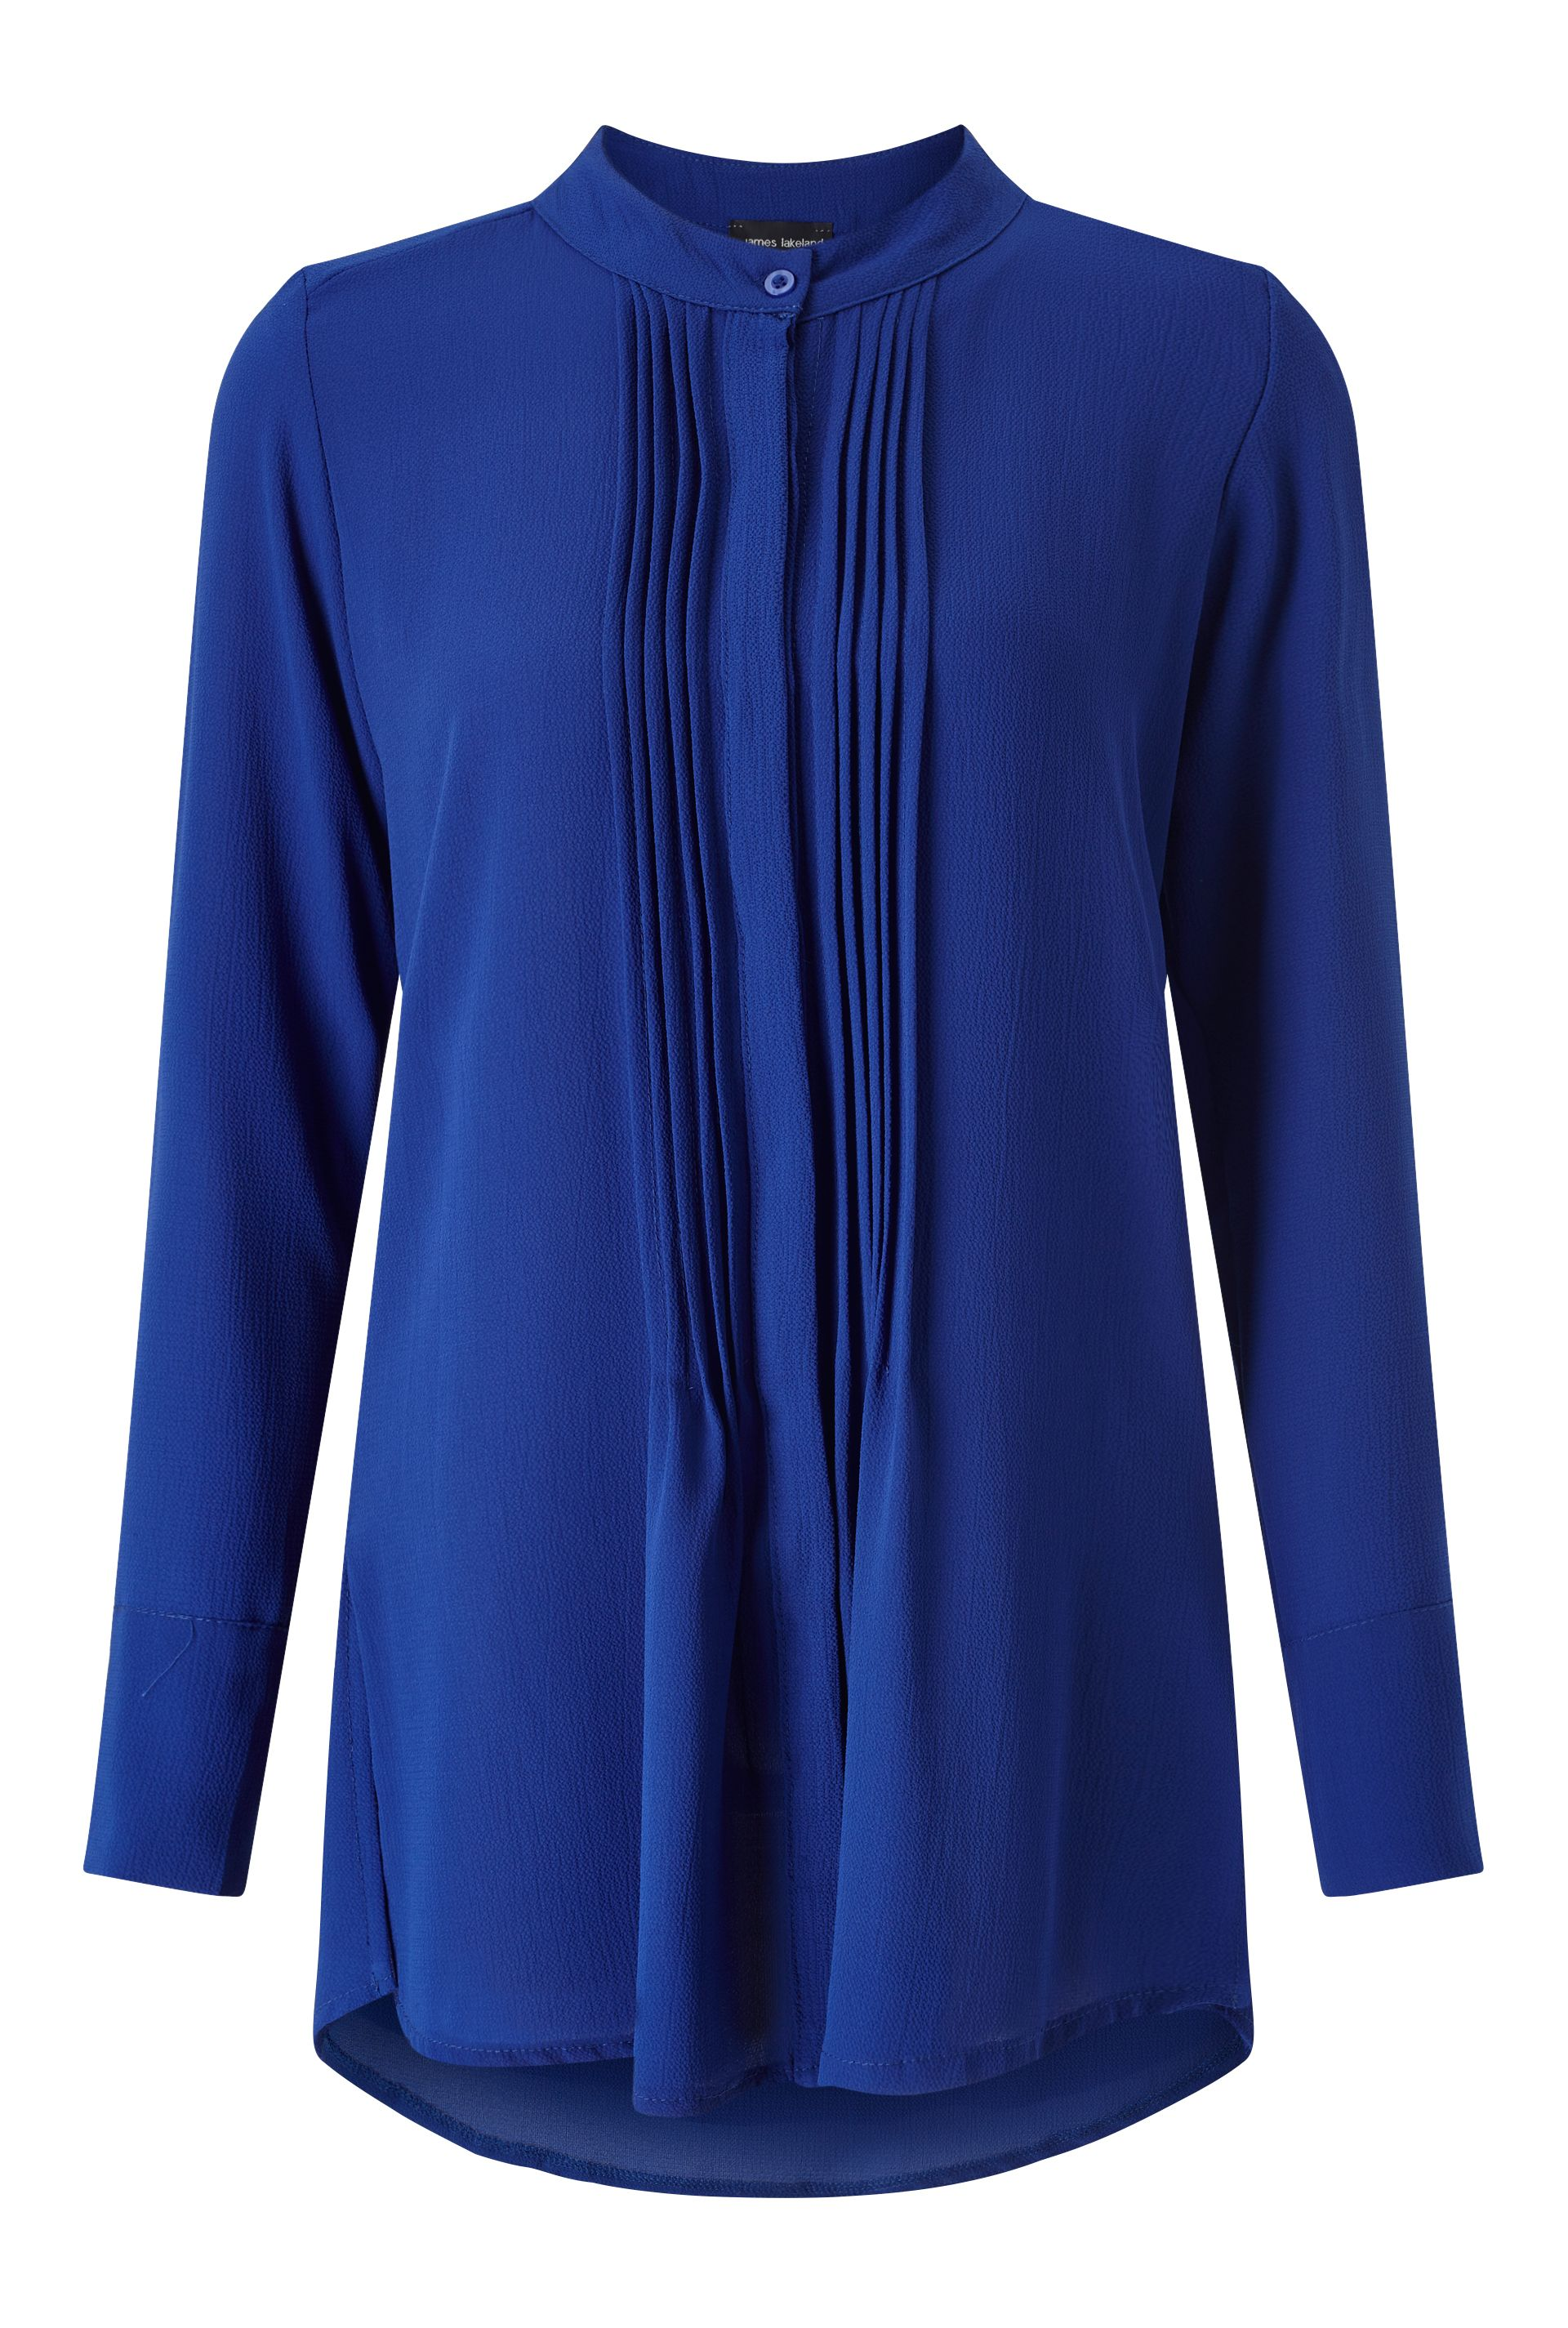 James Lakeland Pleat Front Blouse, Blue